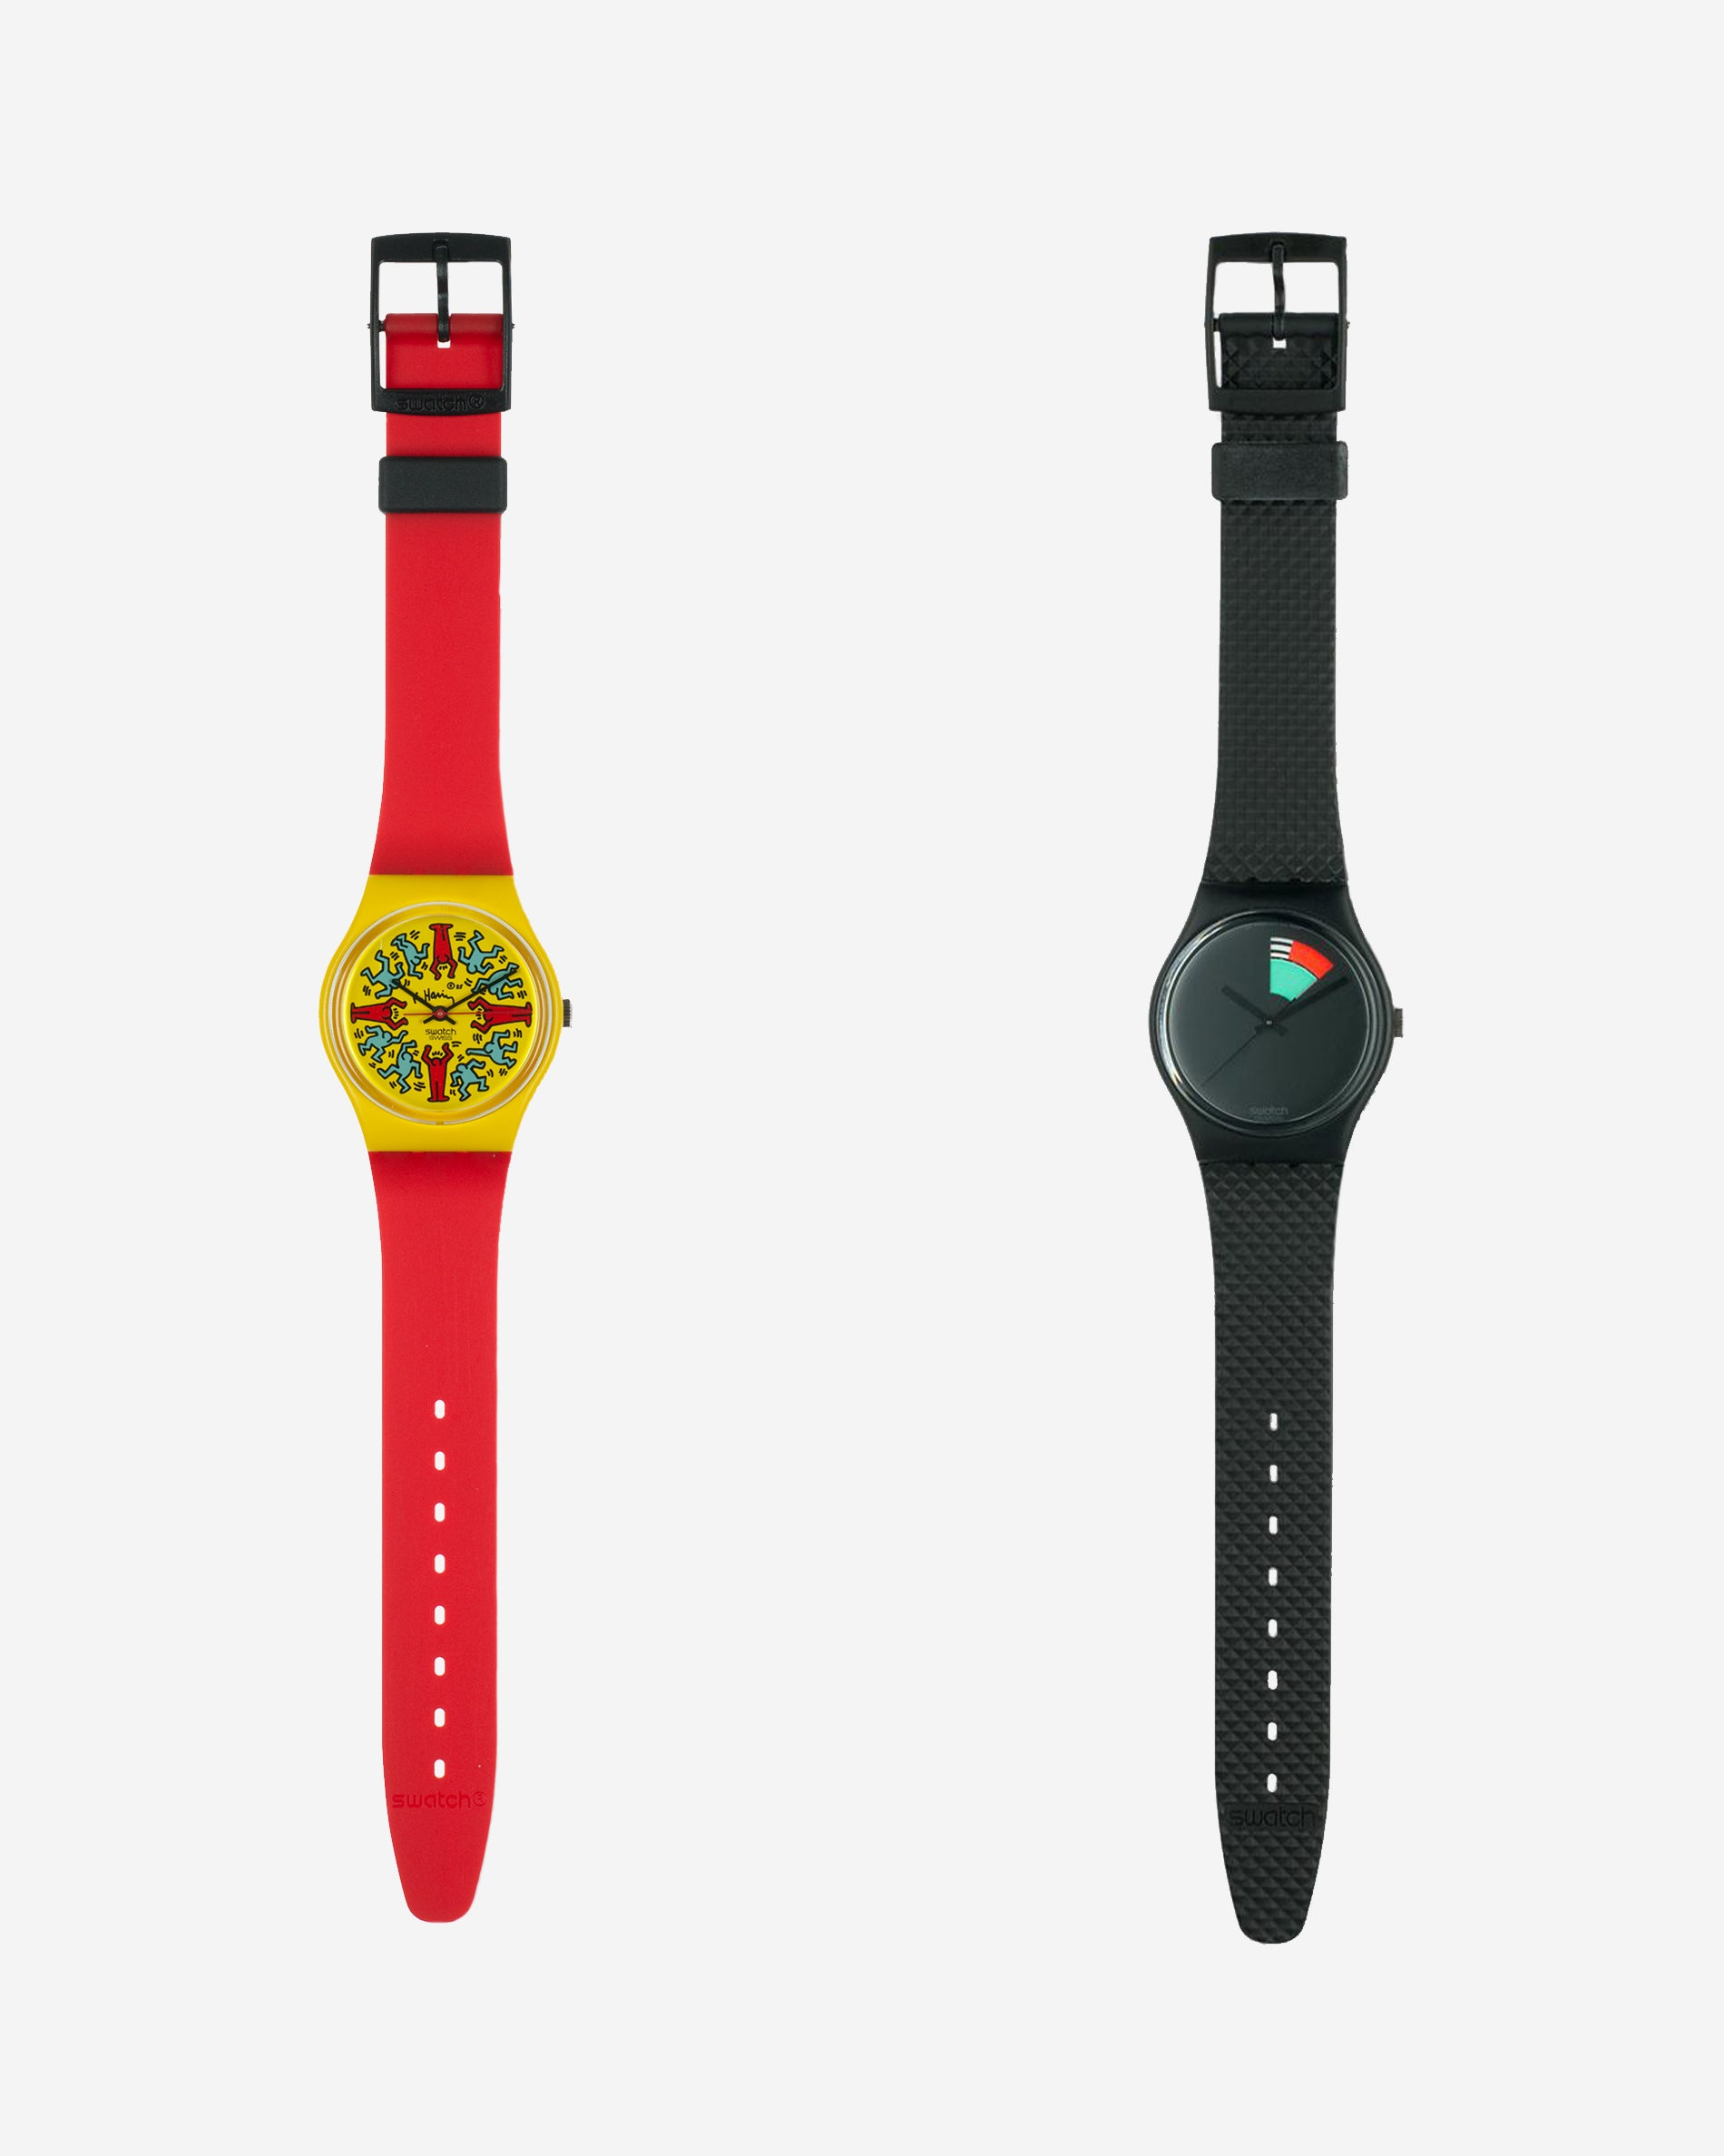 Keith Haring Modele avec personnages Swatch in yellow and red with a Colour Window swatch for A Collected Man London